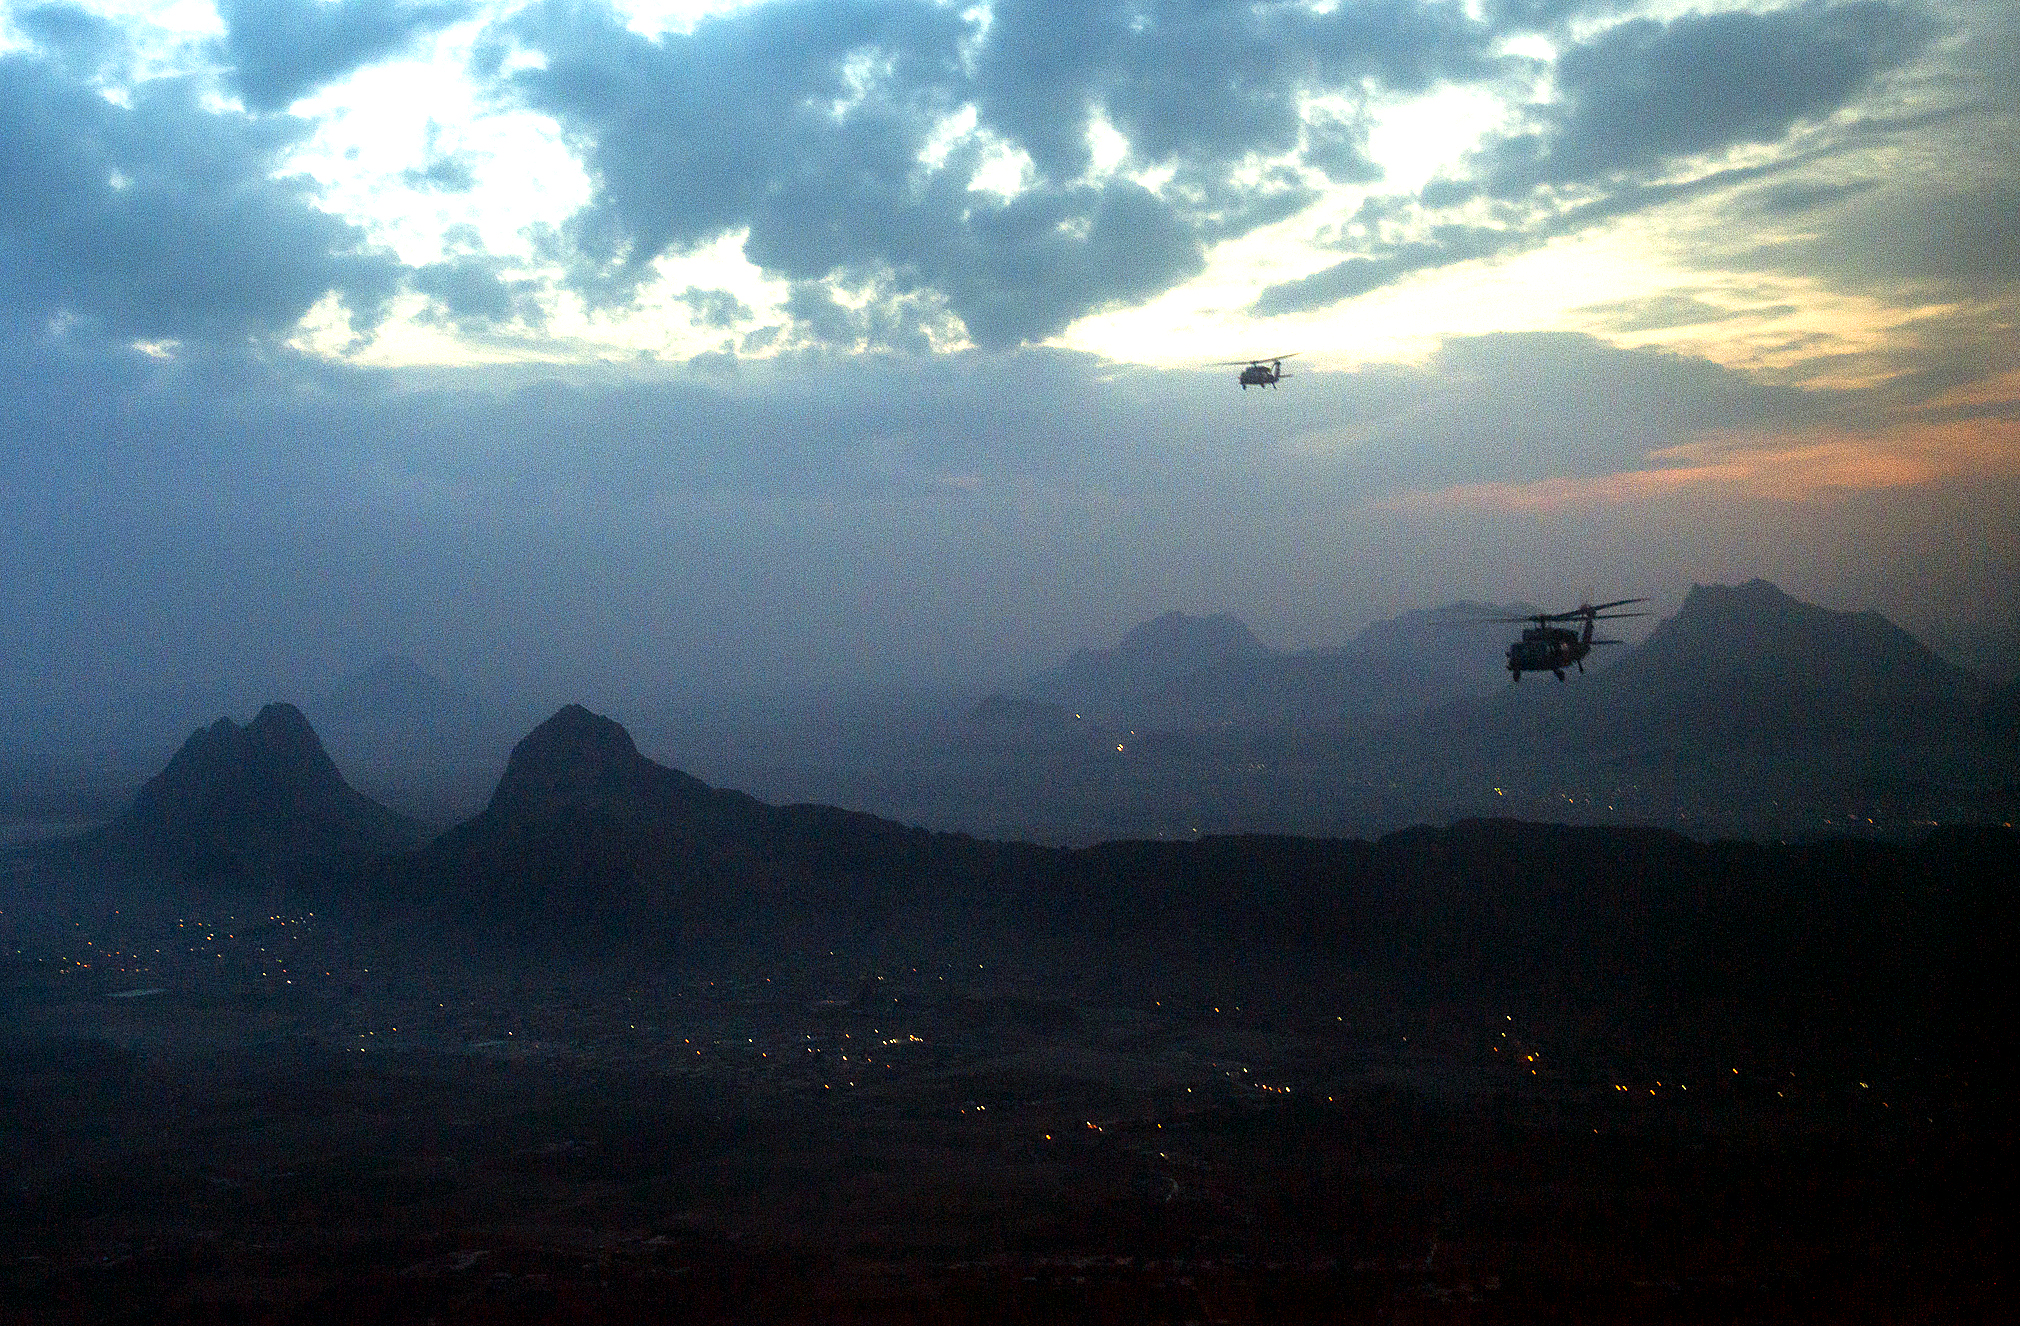 Blackhawk helicopters fly to Kandahar, Afghanistan, Dec. 16, 2012. DoD photo by D. Myles Cullen